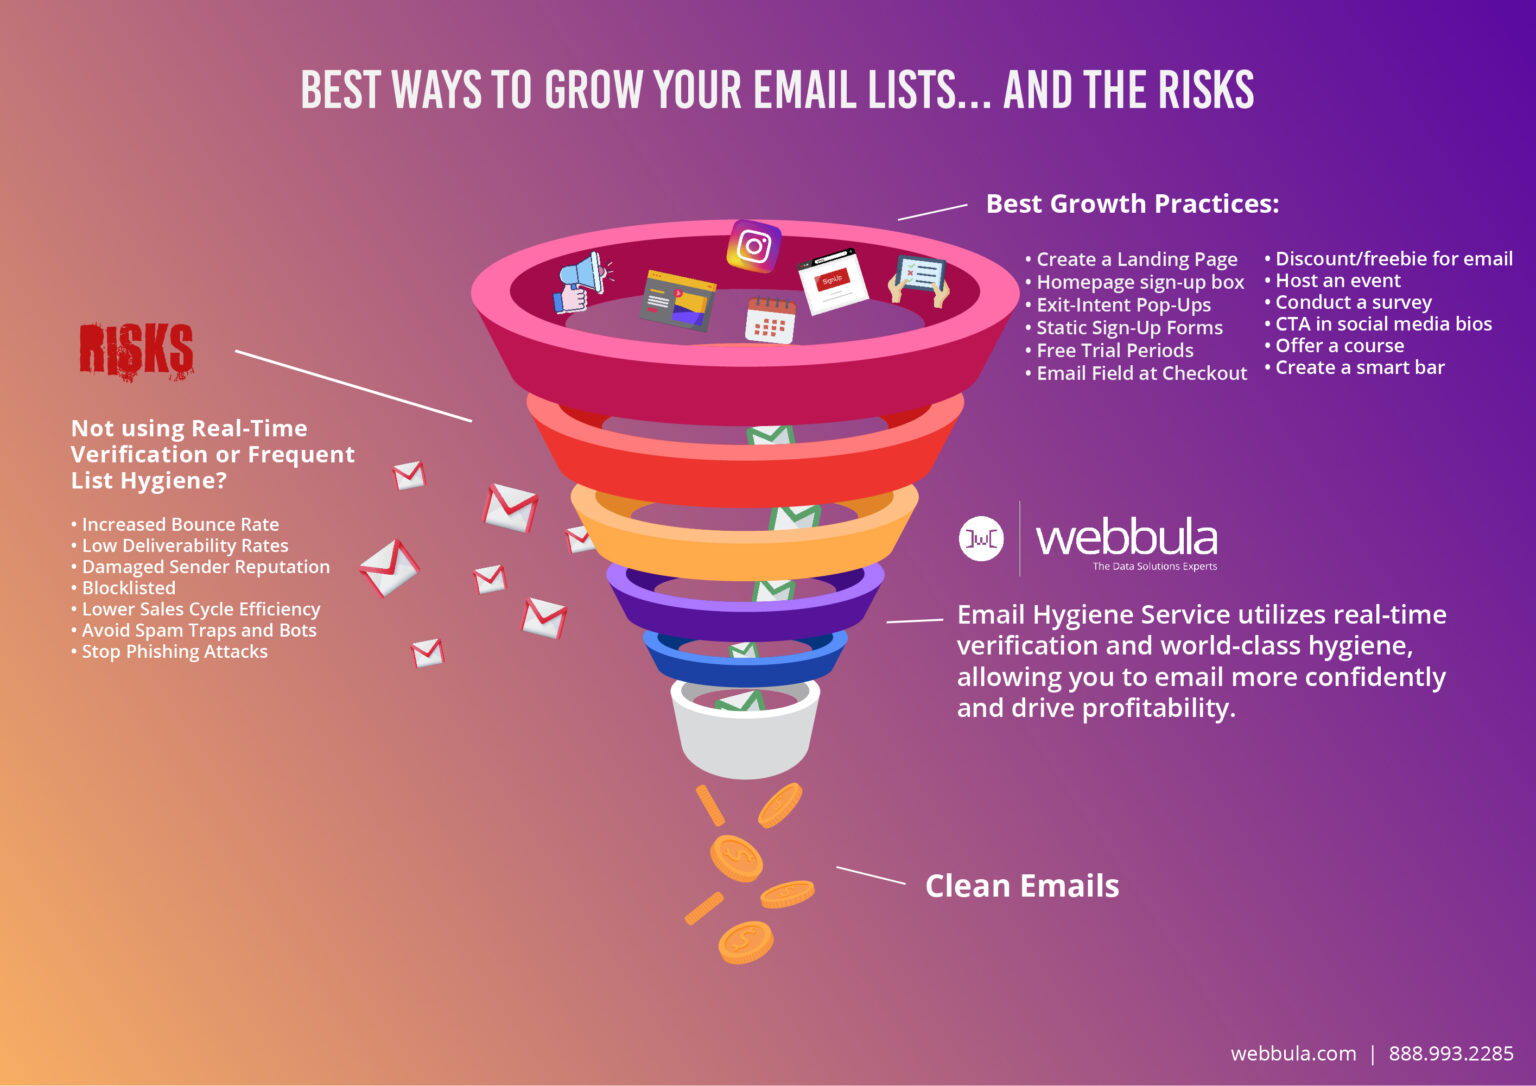 Best Ways to Grow Your Email Lists...And the Risks